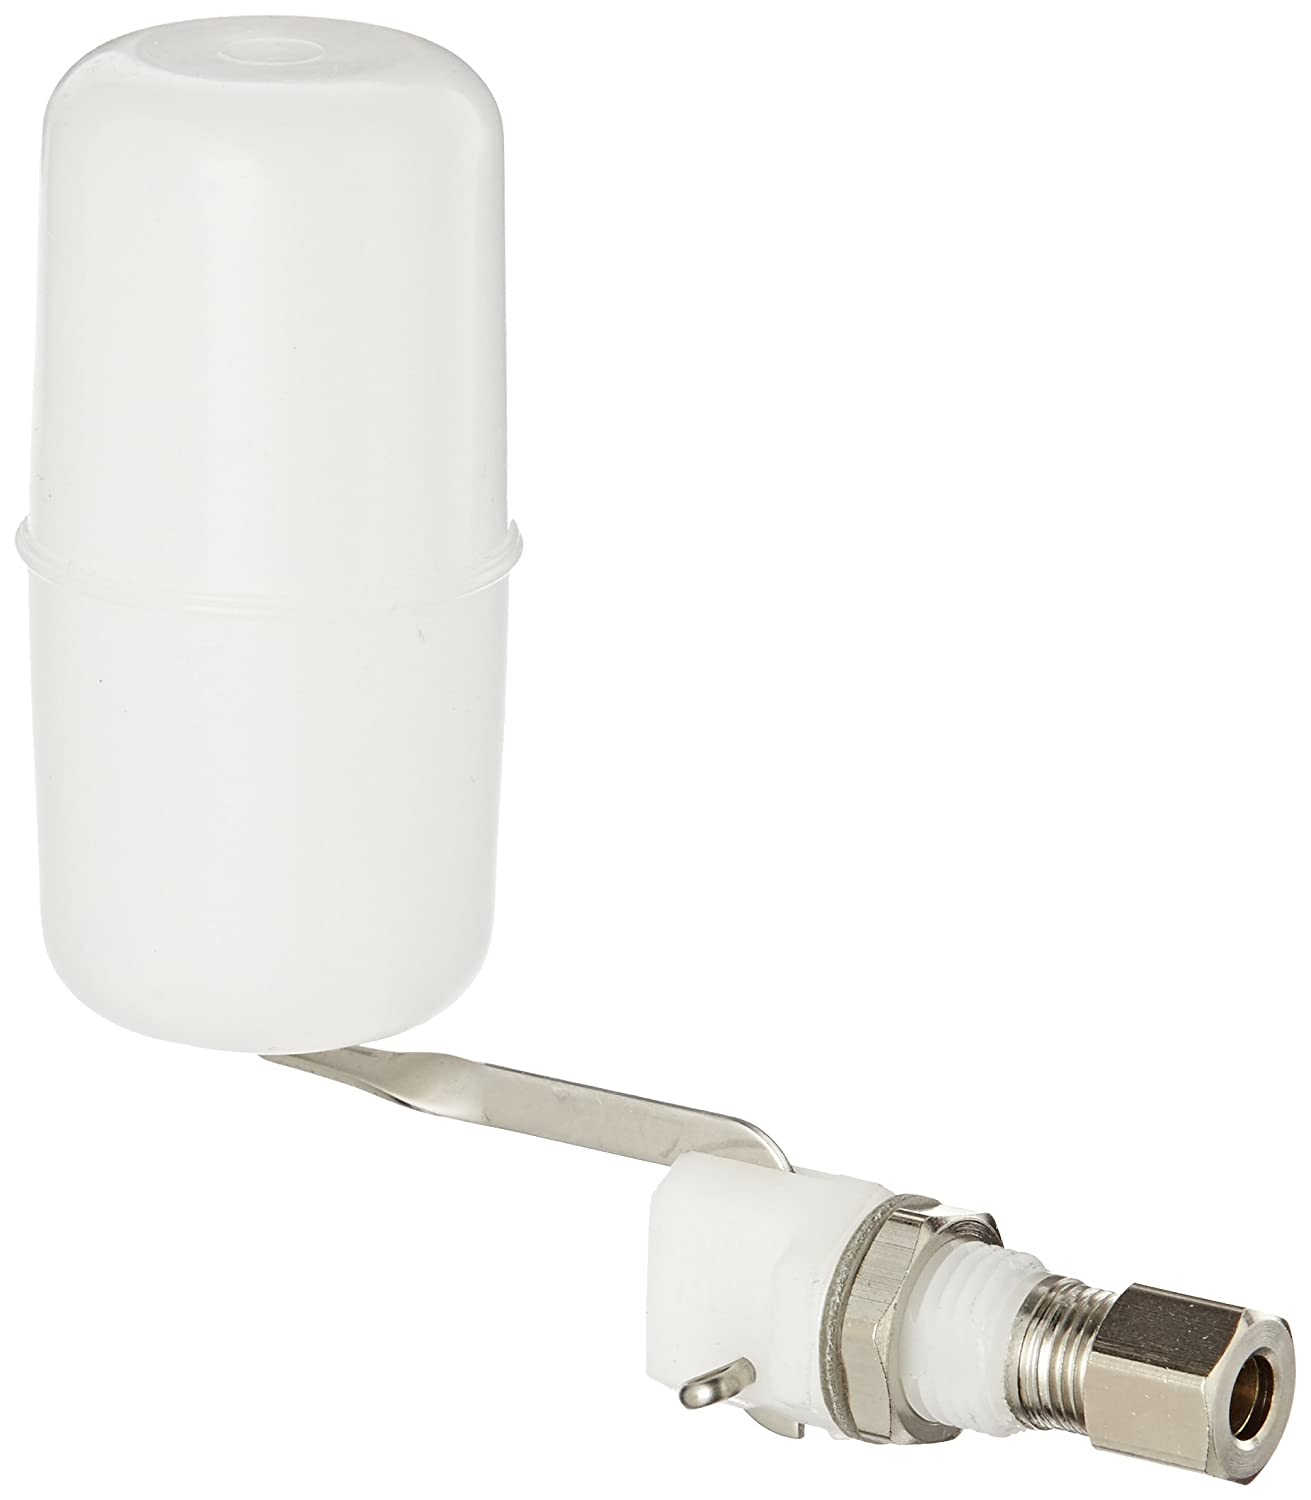 Robert Manufacturing RM292 Series Bobby Series Celcon Miniature Valve and Float Assembly, 1/4' Compression Nut, 125 psi Pressure, 1/16' Orifice 1/4 Compression Nut 1/16 Orifice Control Devices